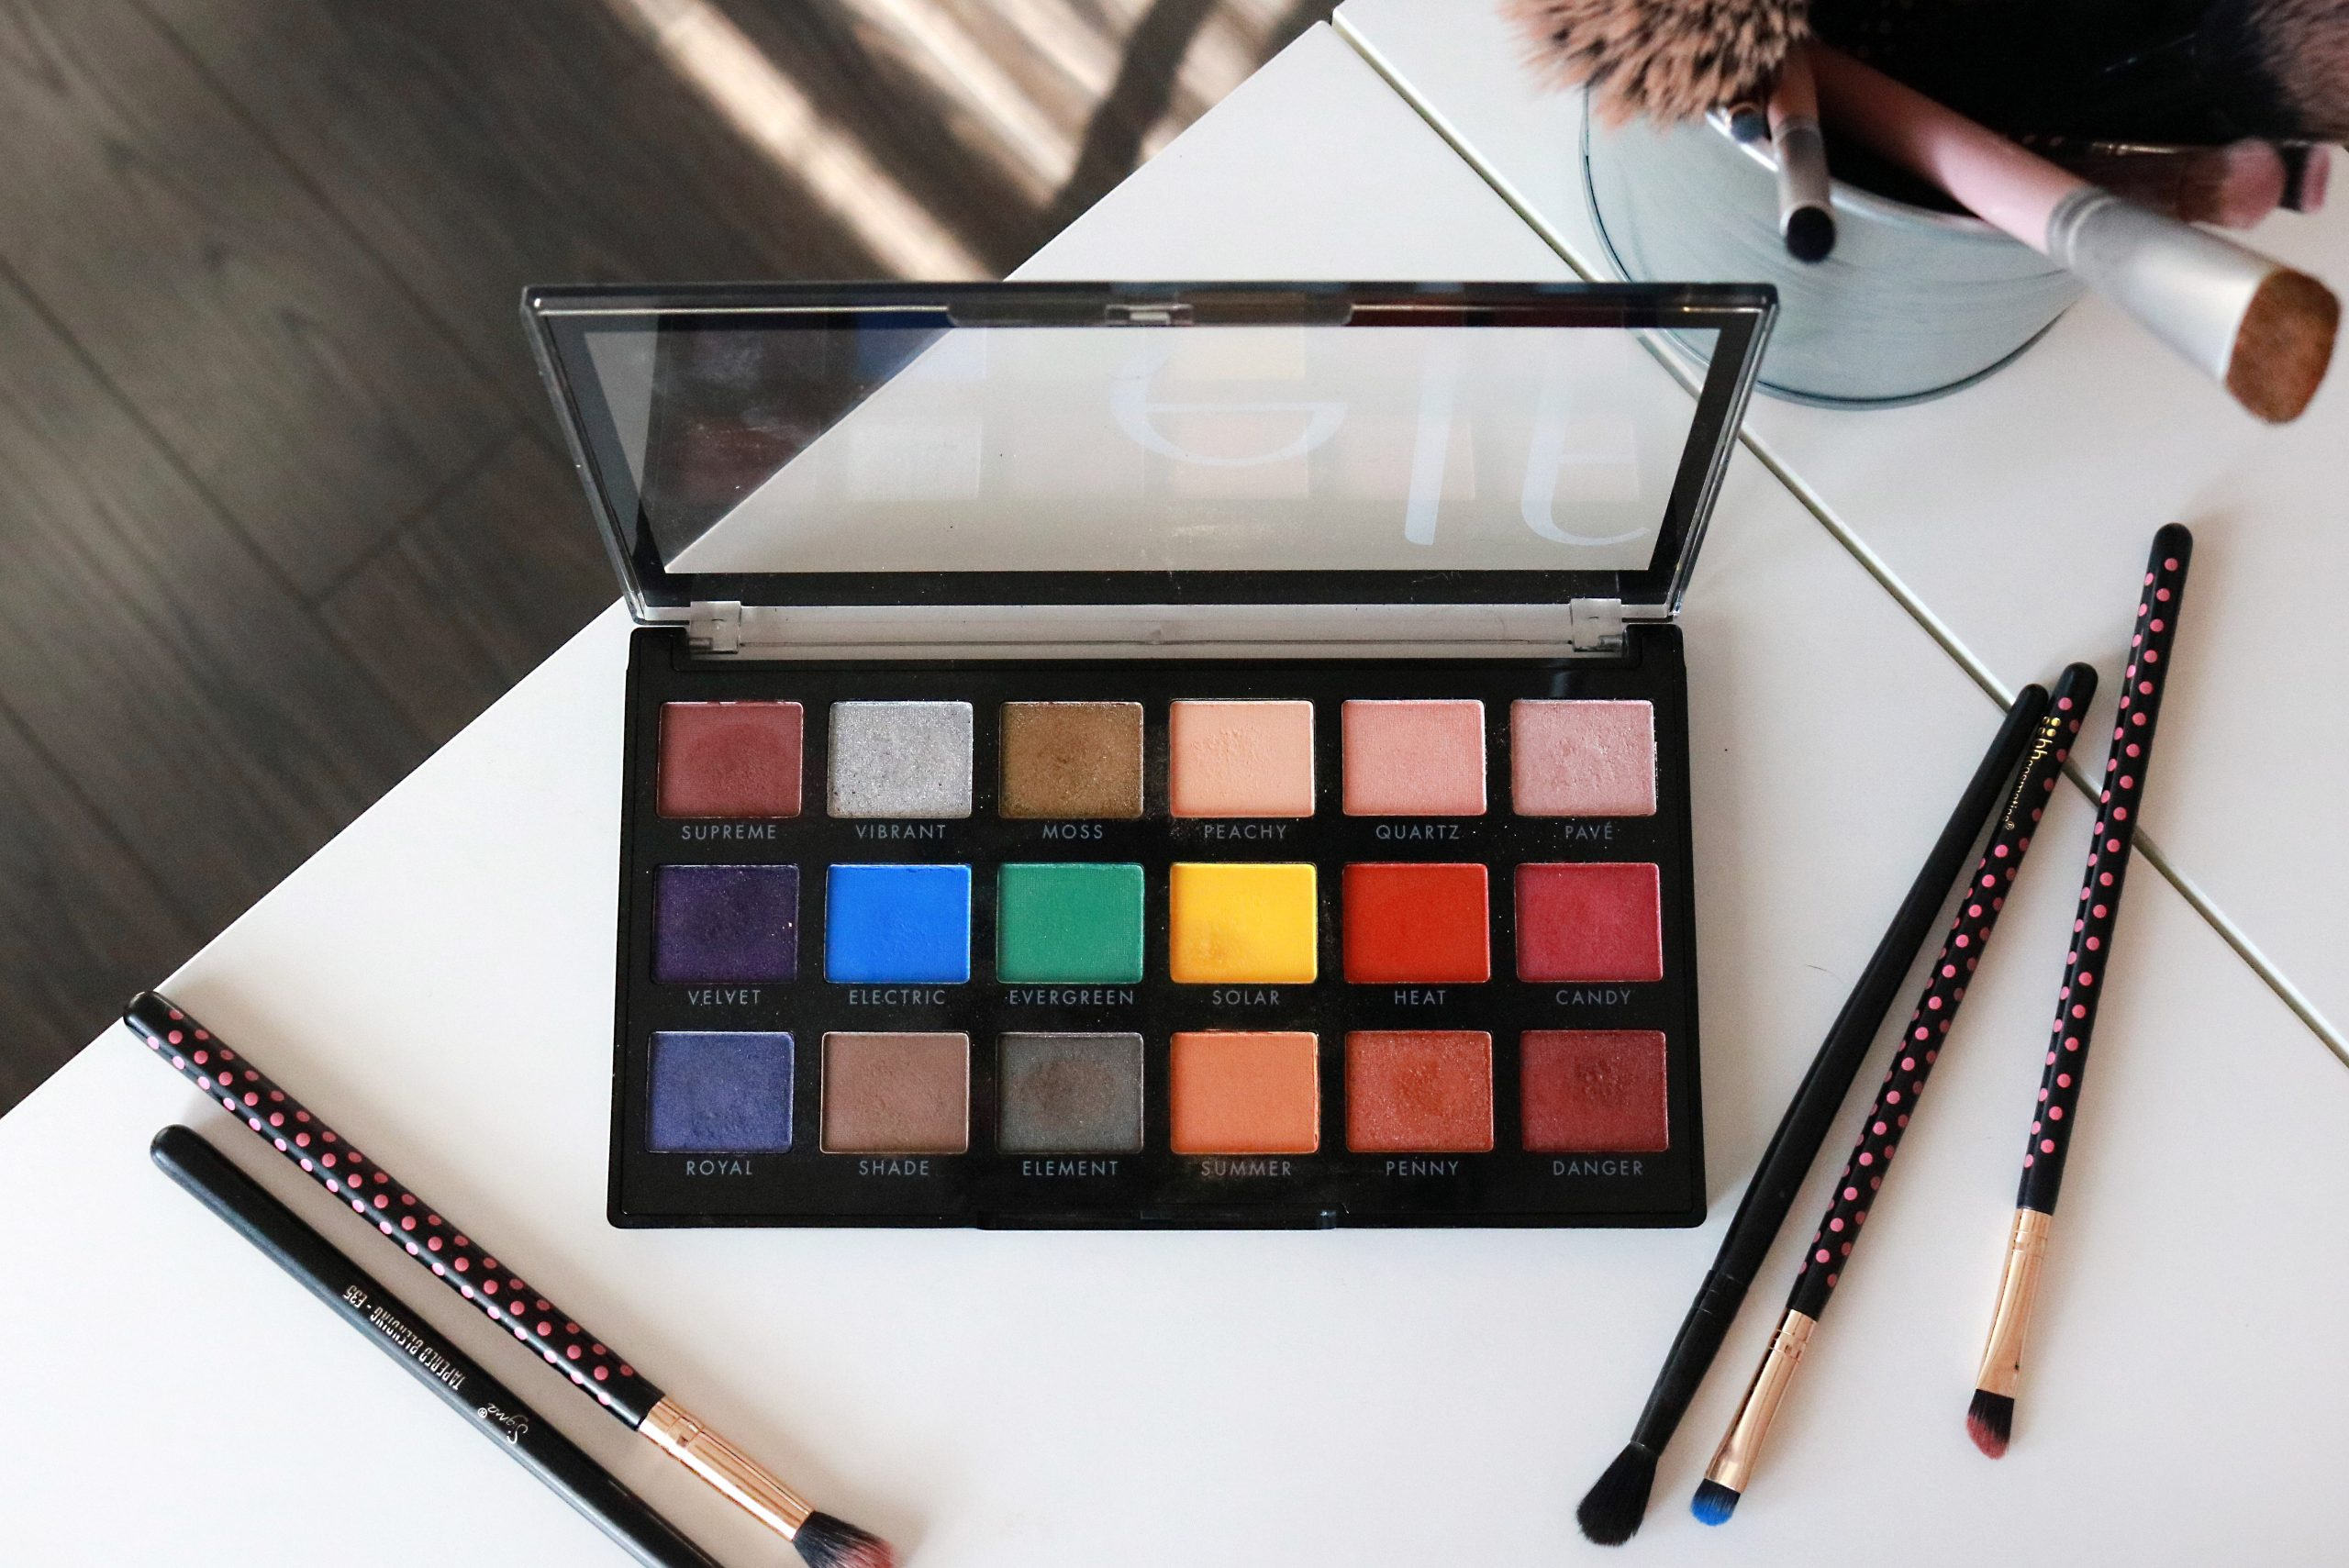 e.l.f. 18 Hit Wonders Colourful Eyeshadow Palette